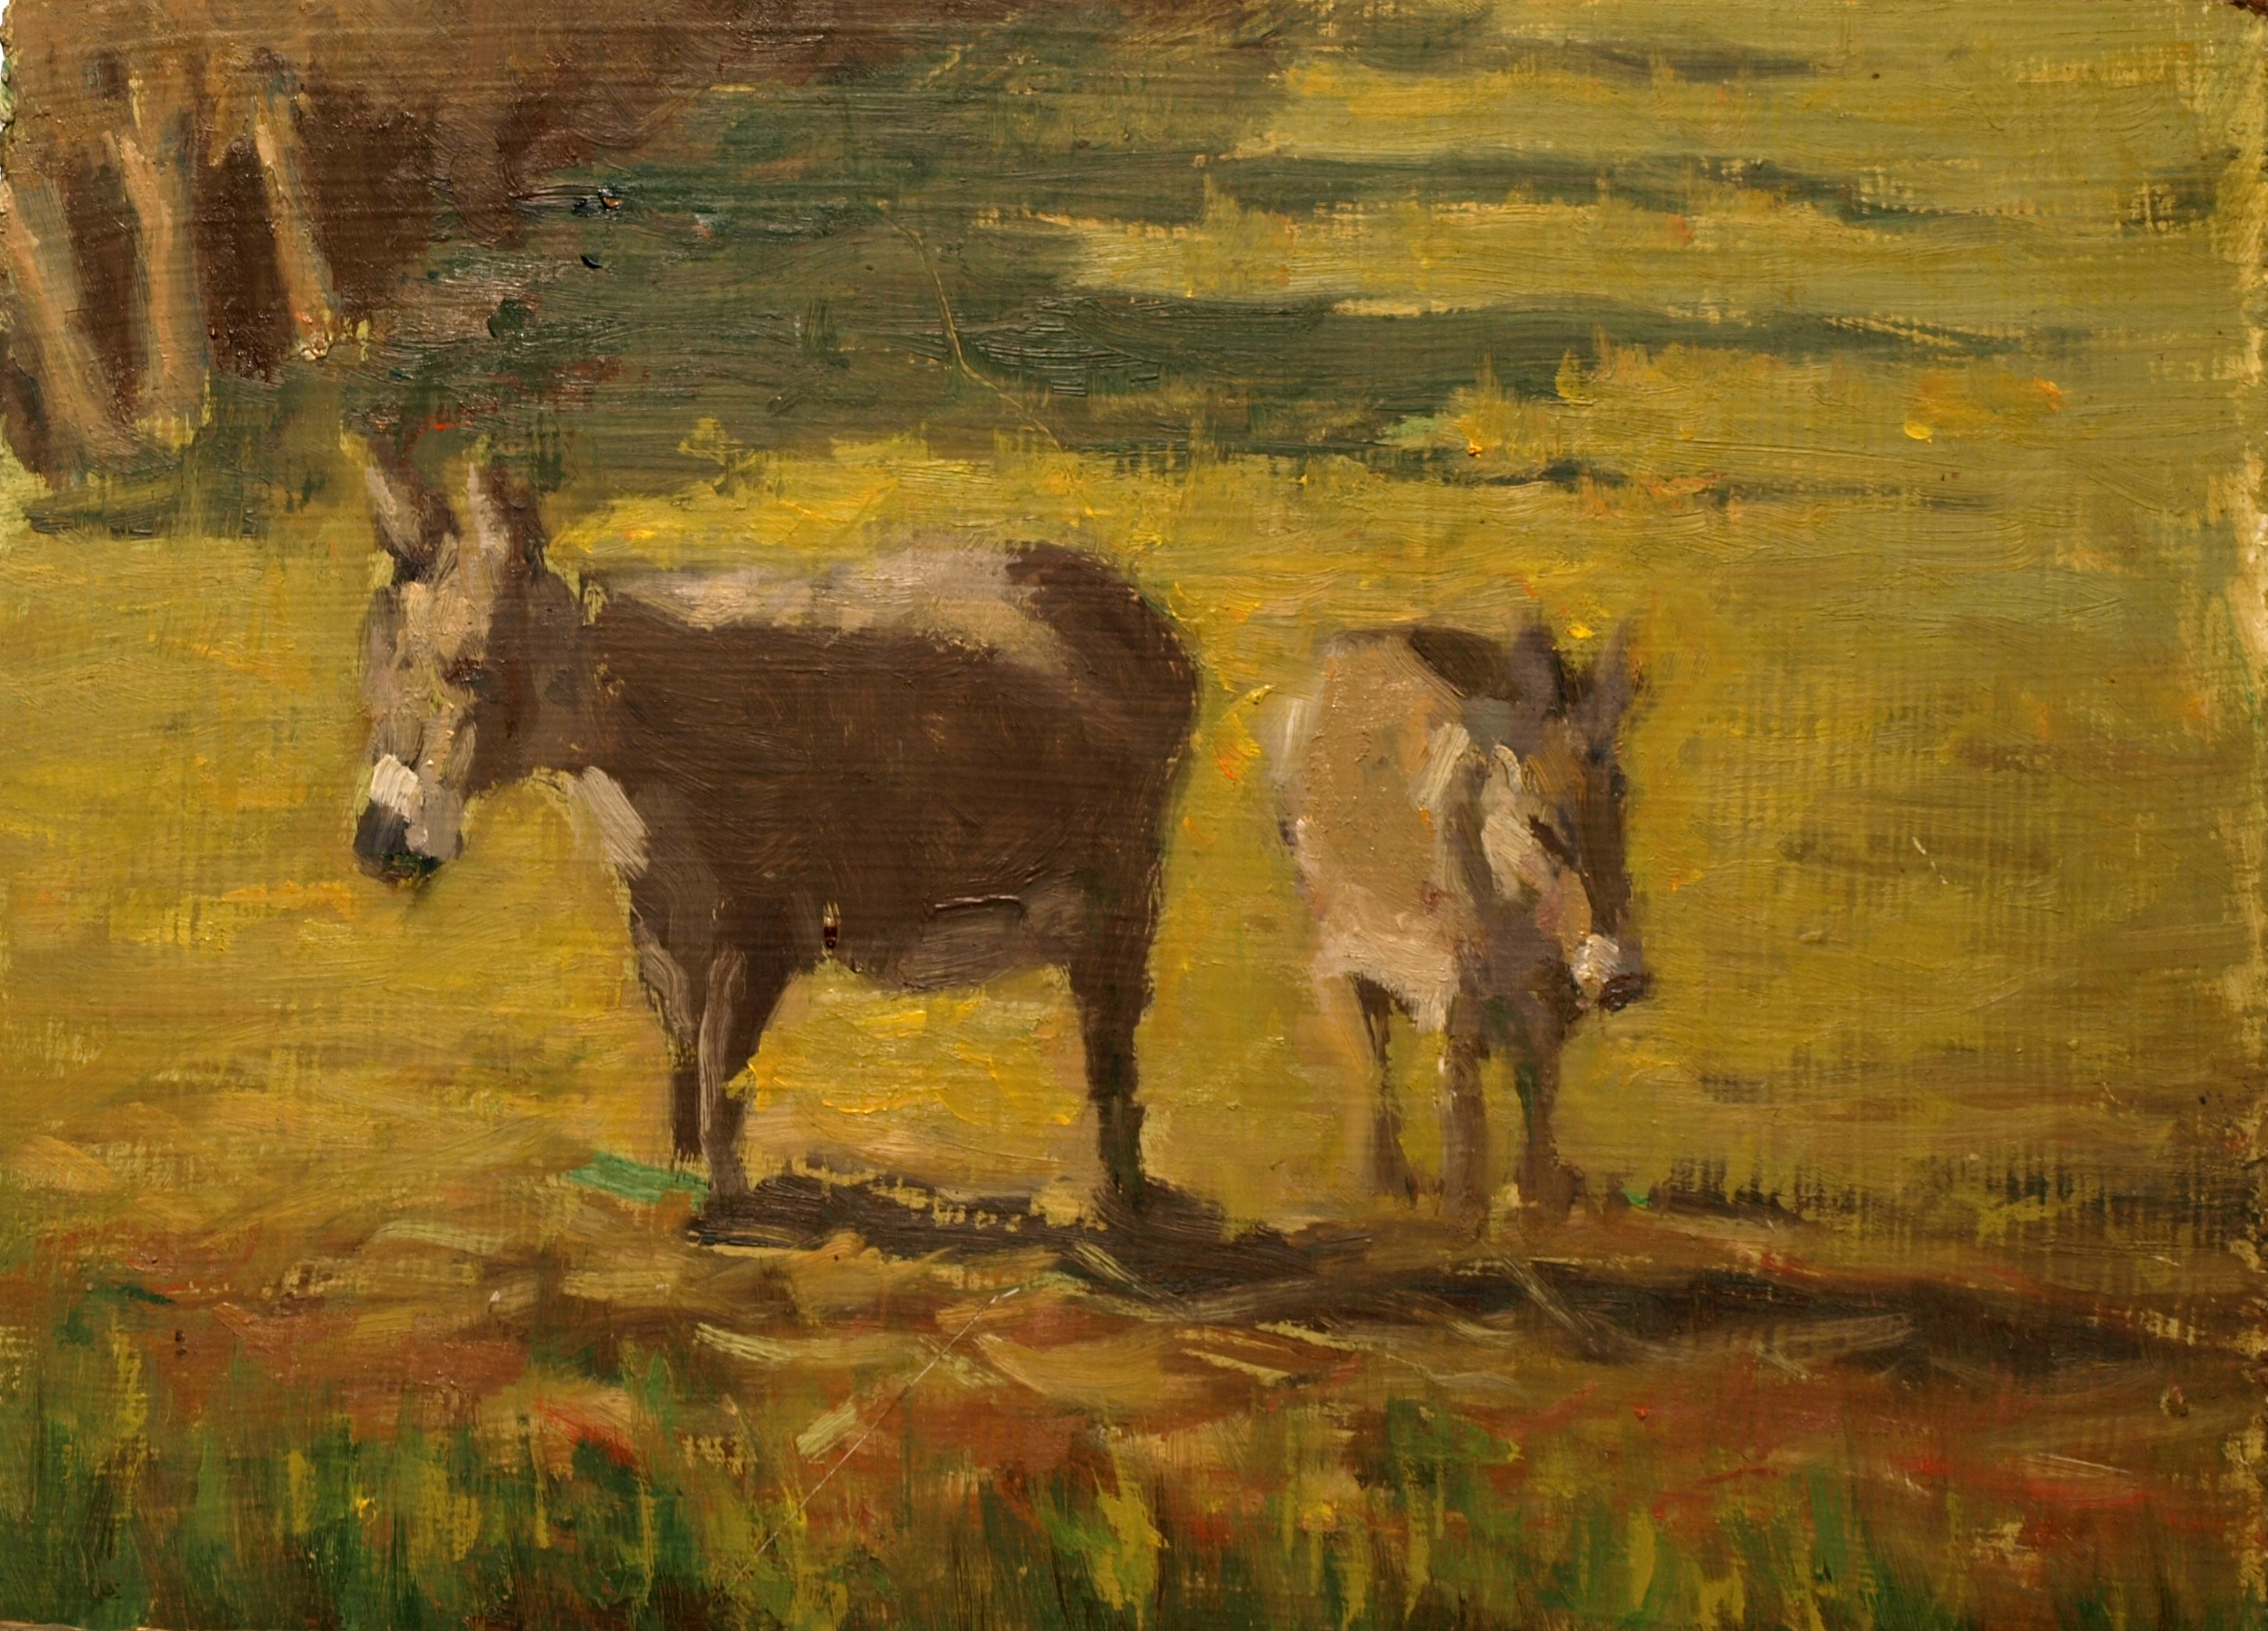 Two Burrows, Oil on Canvas on Panel, 9 x 12 Inches, by Richard Stalter, $220